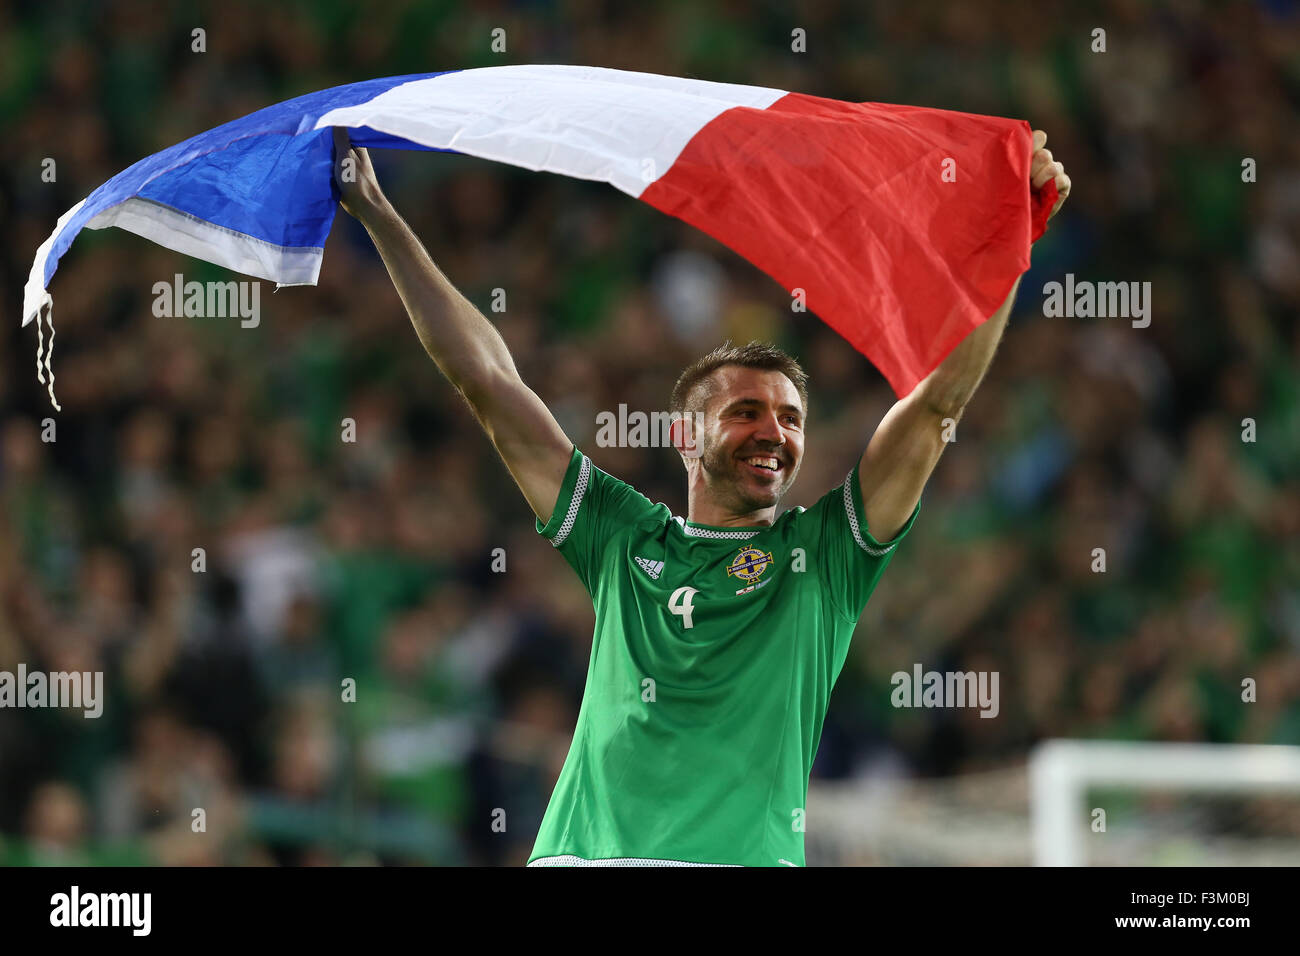 Belfast, UK. 8th October, 2015.Gareth McAuley of Northern Ireland celebrates with a French flag at the end of theStock Photo